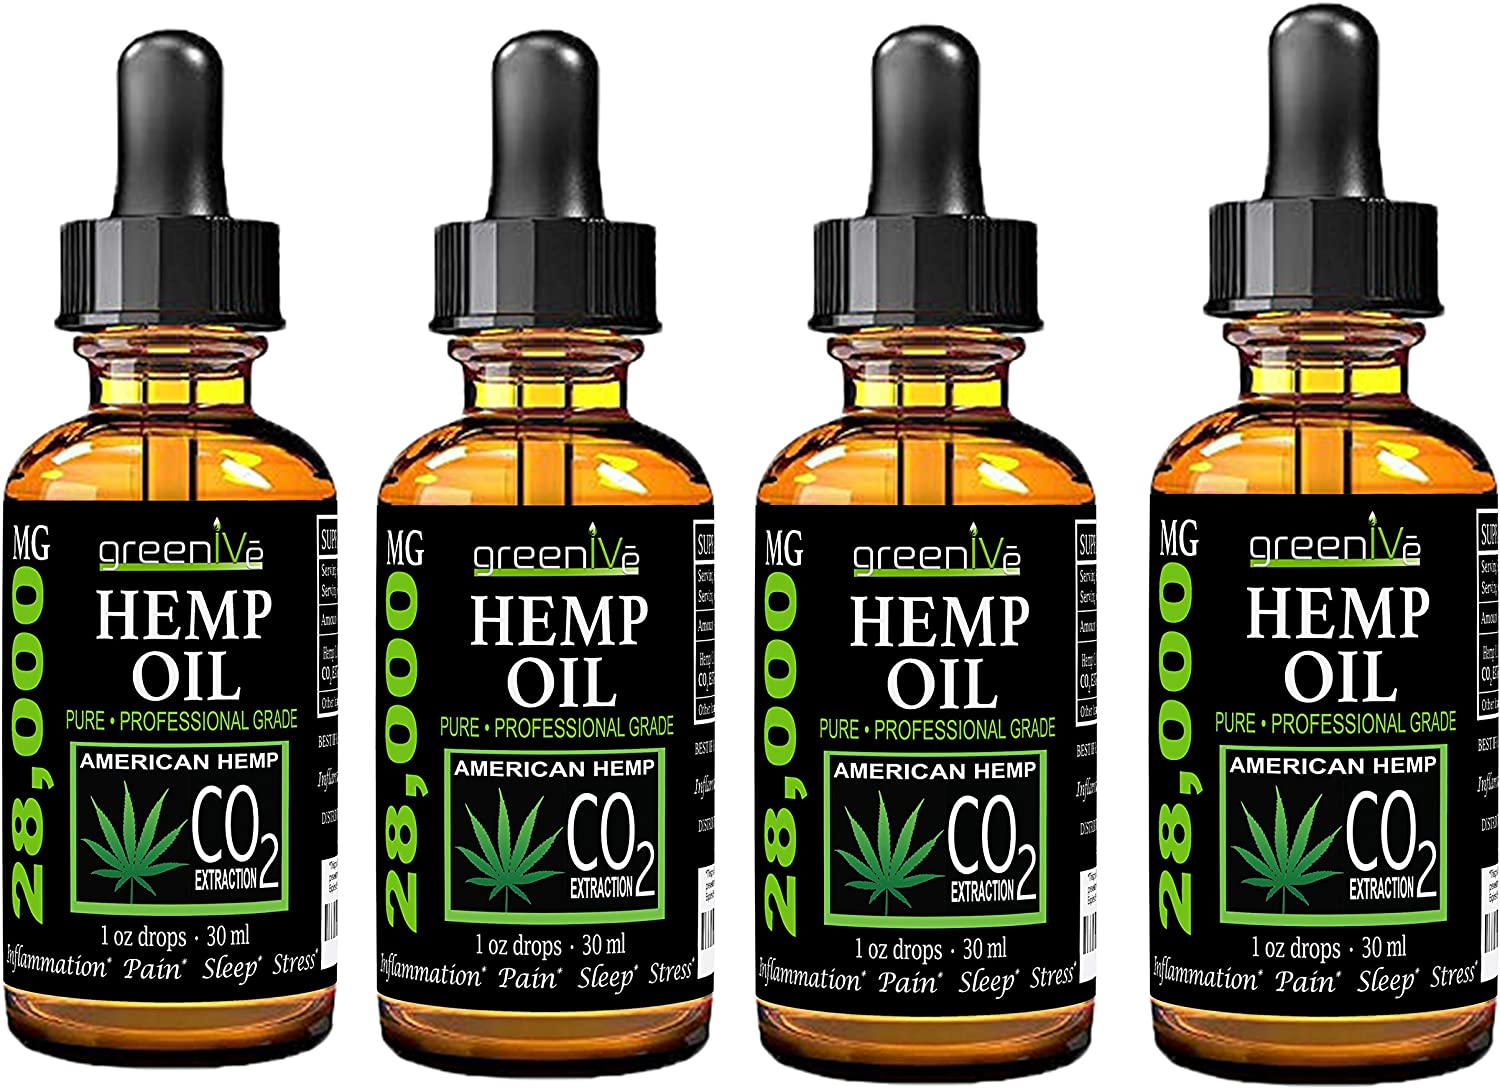 (4 Pack) GreenIVe 28,000mg Hemp Oil Anti-Inflammatory, Rapid Pain Relief, Stress Reducer, Vegan Omegas C02 Extraction Exclusively on Amazon (4 Pack)